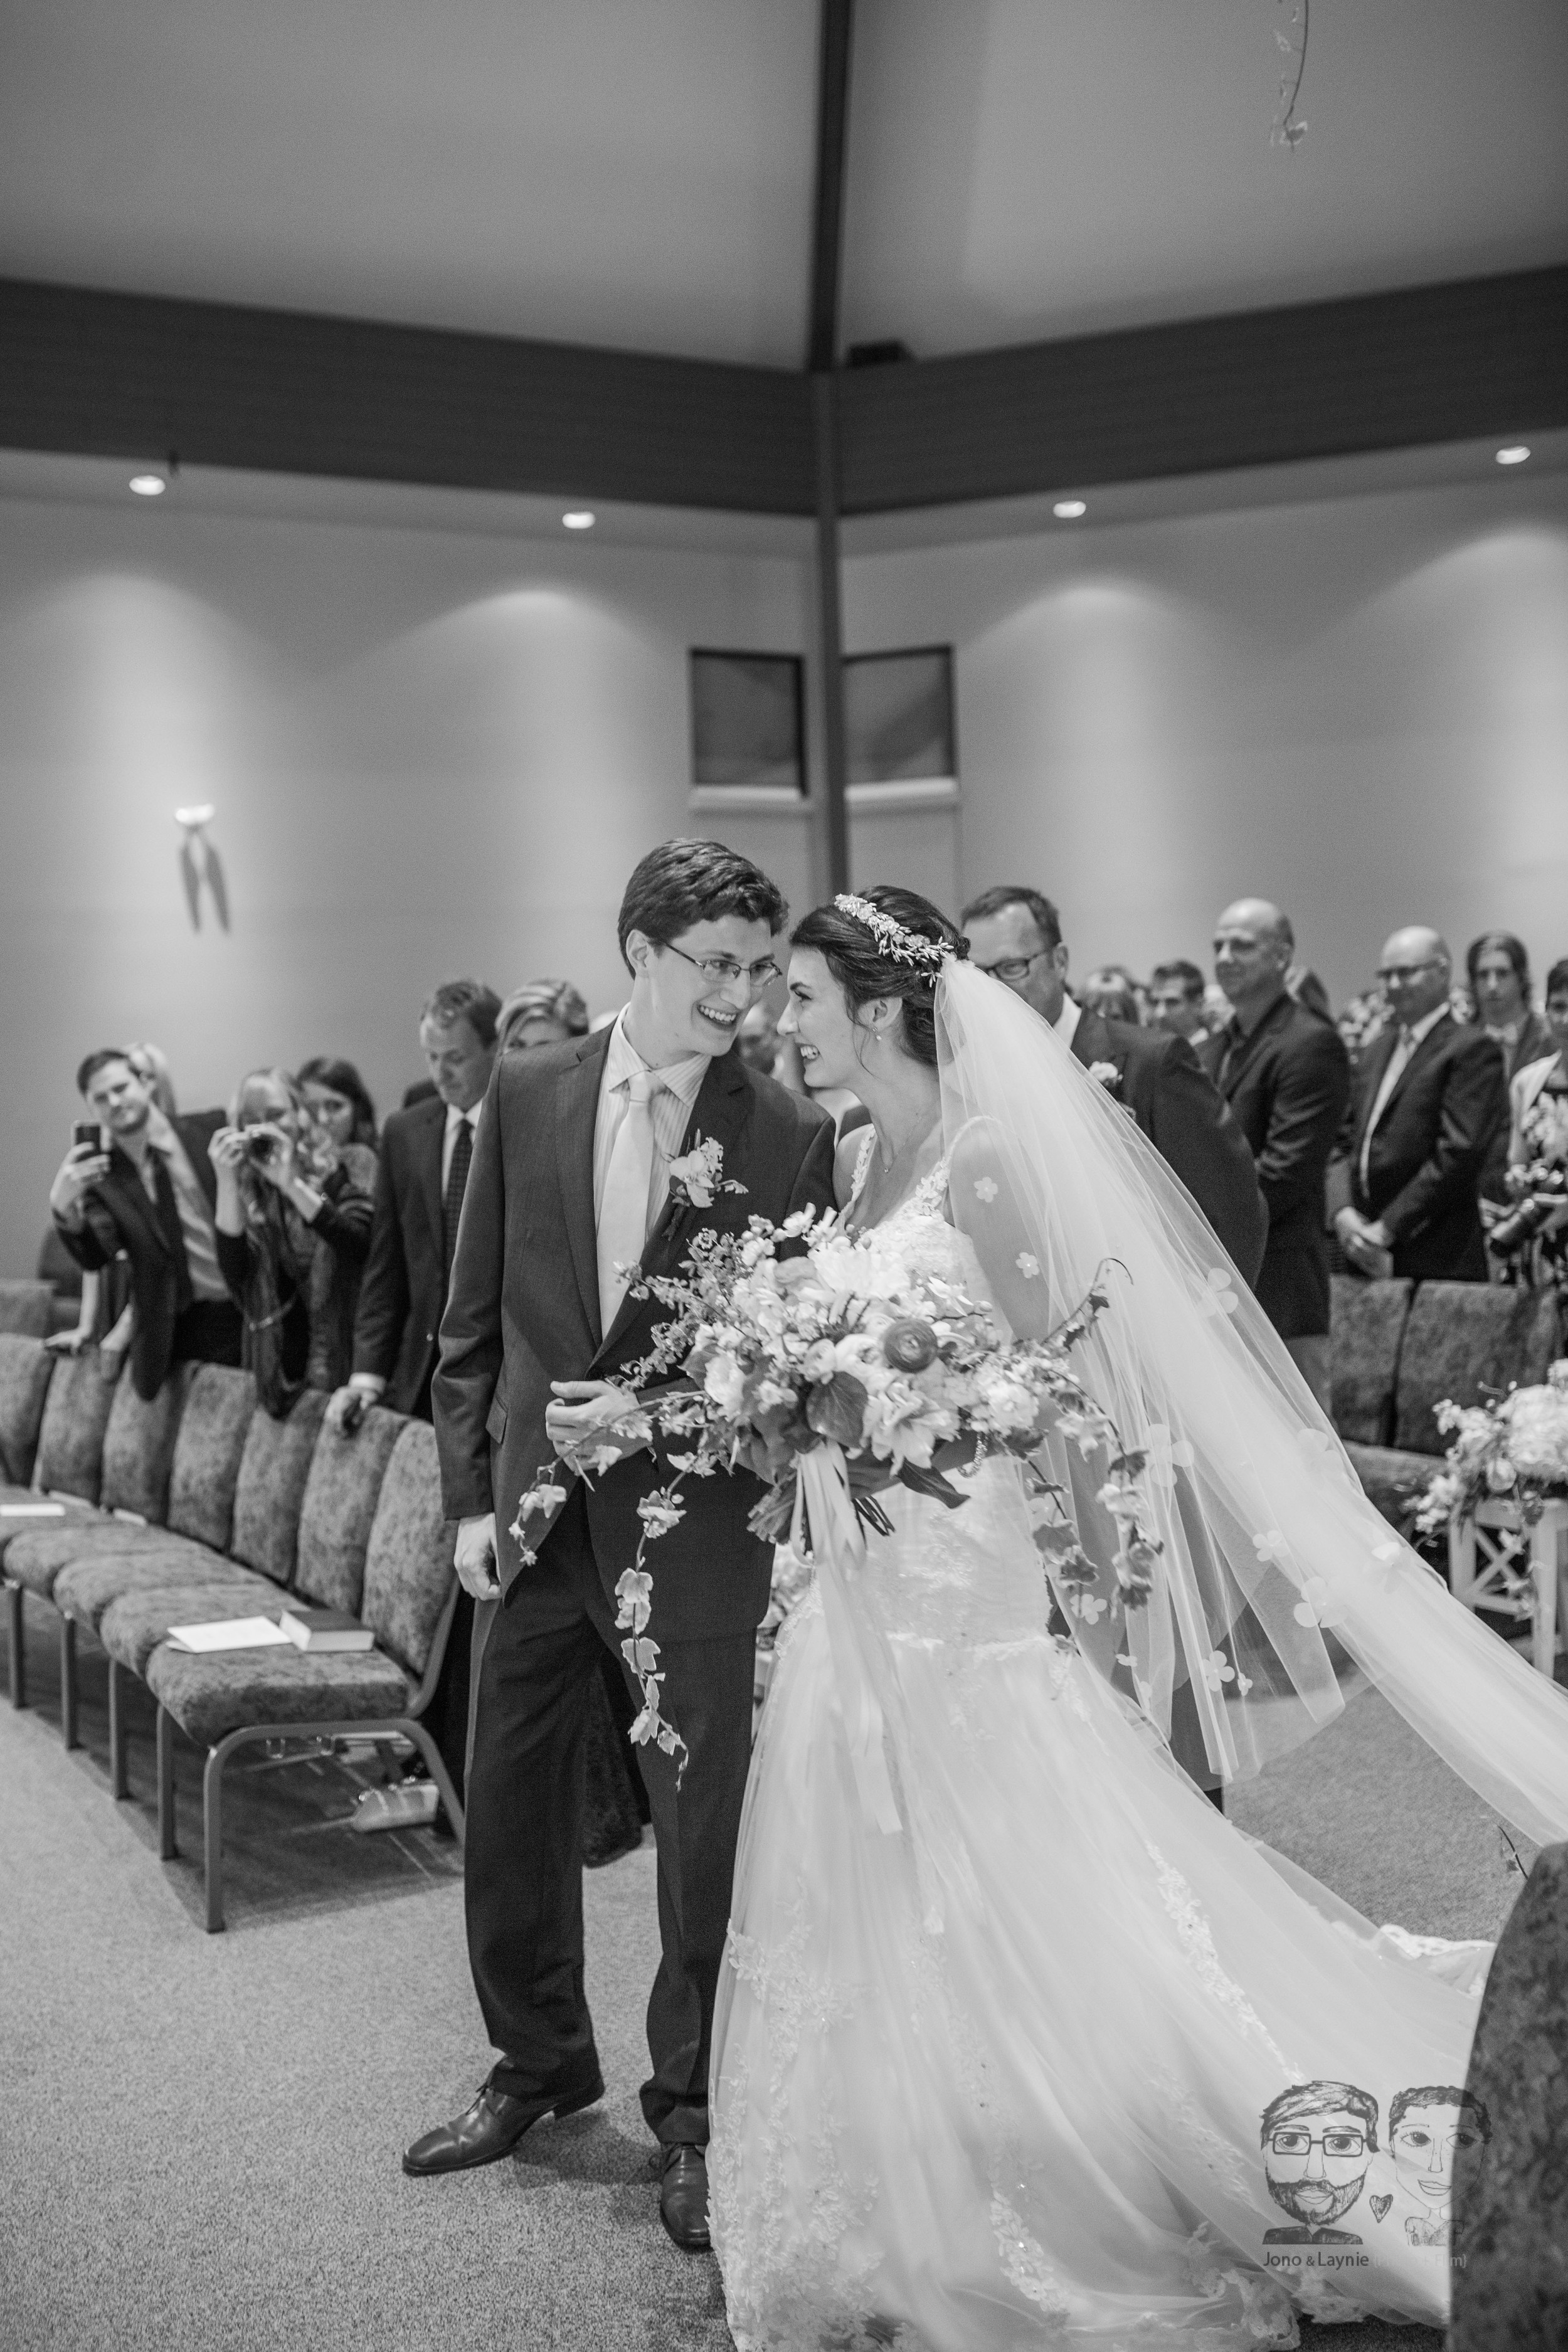 025Toronto Wedding Photographers and Videographers-Jono & Laynie Co.jpg